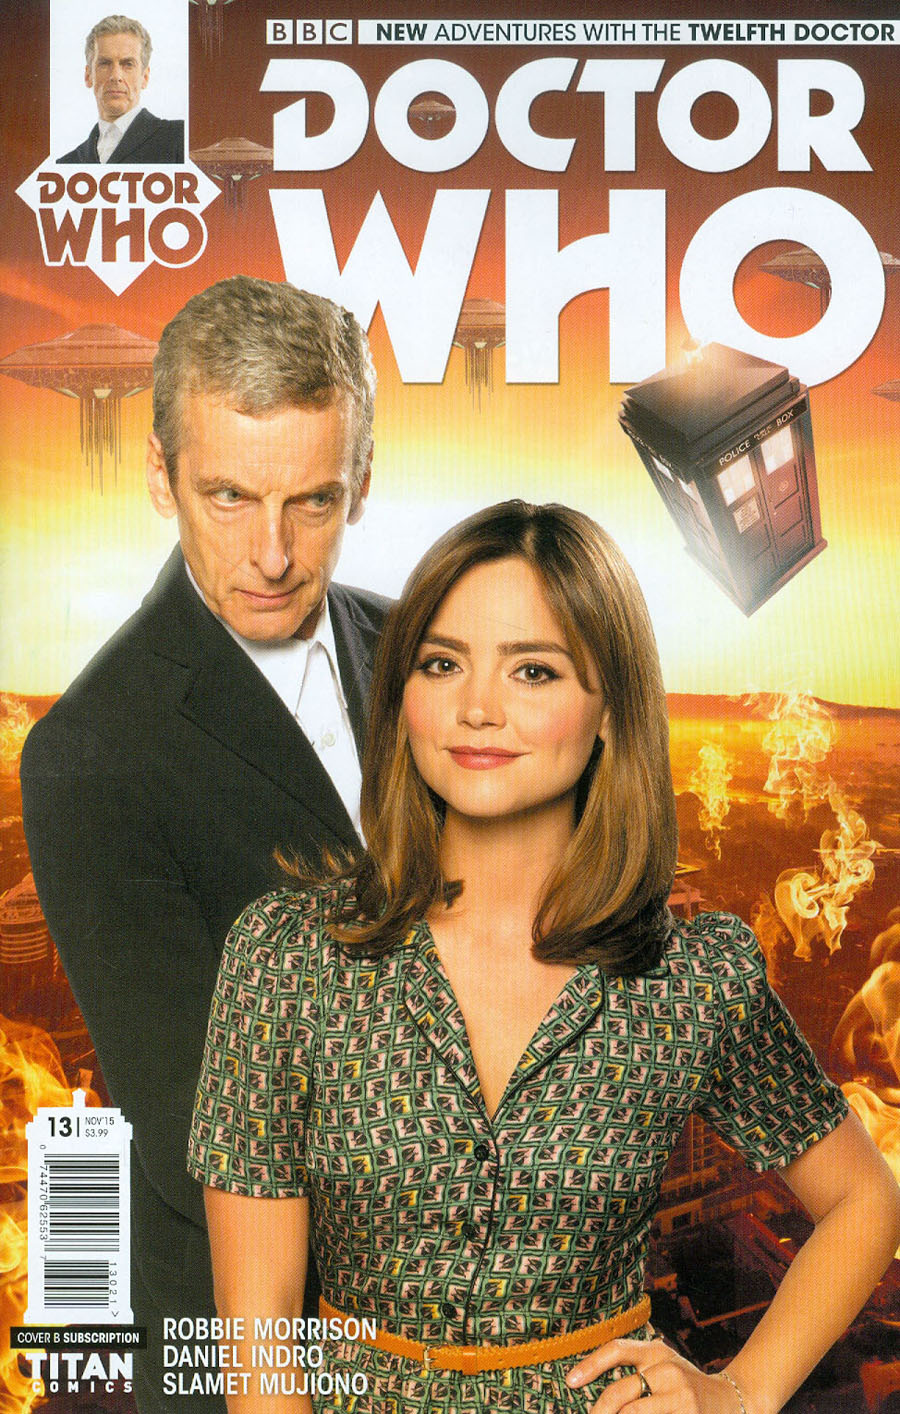 Doctor Who 12th Doctor #13 Cover B Variant Photo Subscription Cover